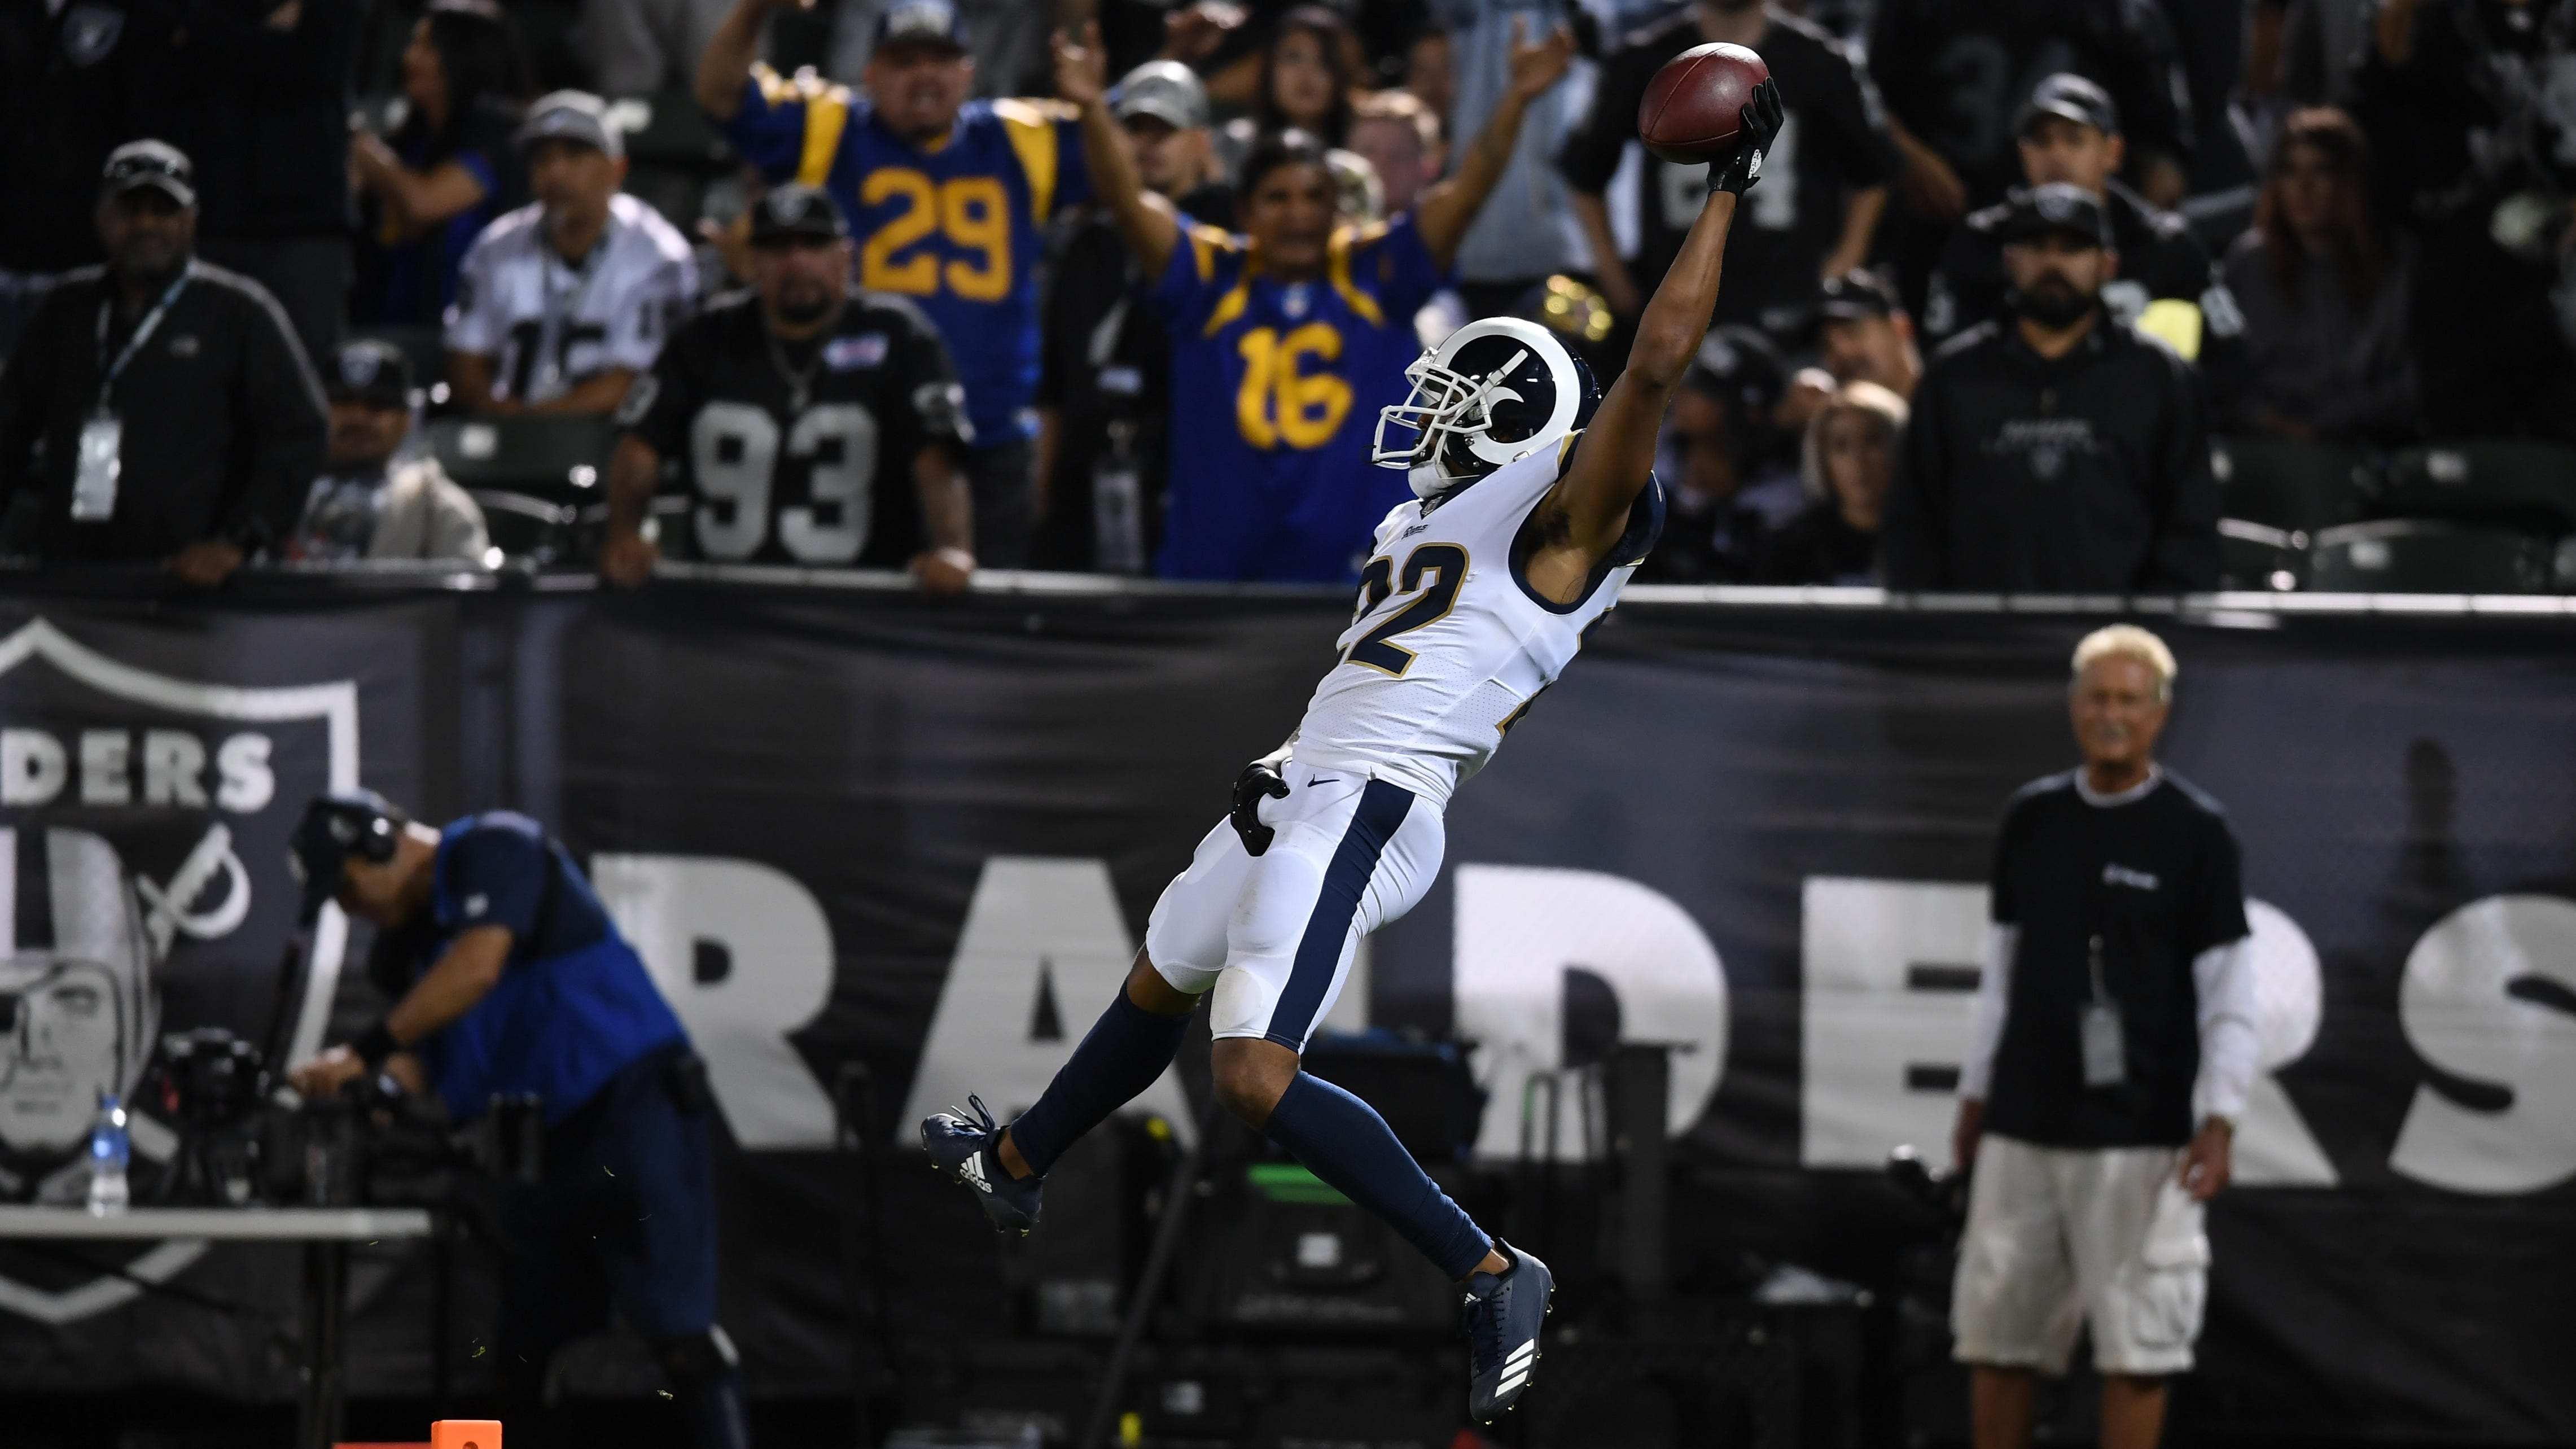 Marcus Peters mimics Marshawn Lynch's 'Beast Quake' TD celebration after pick-six